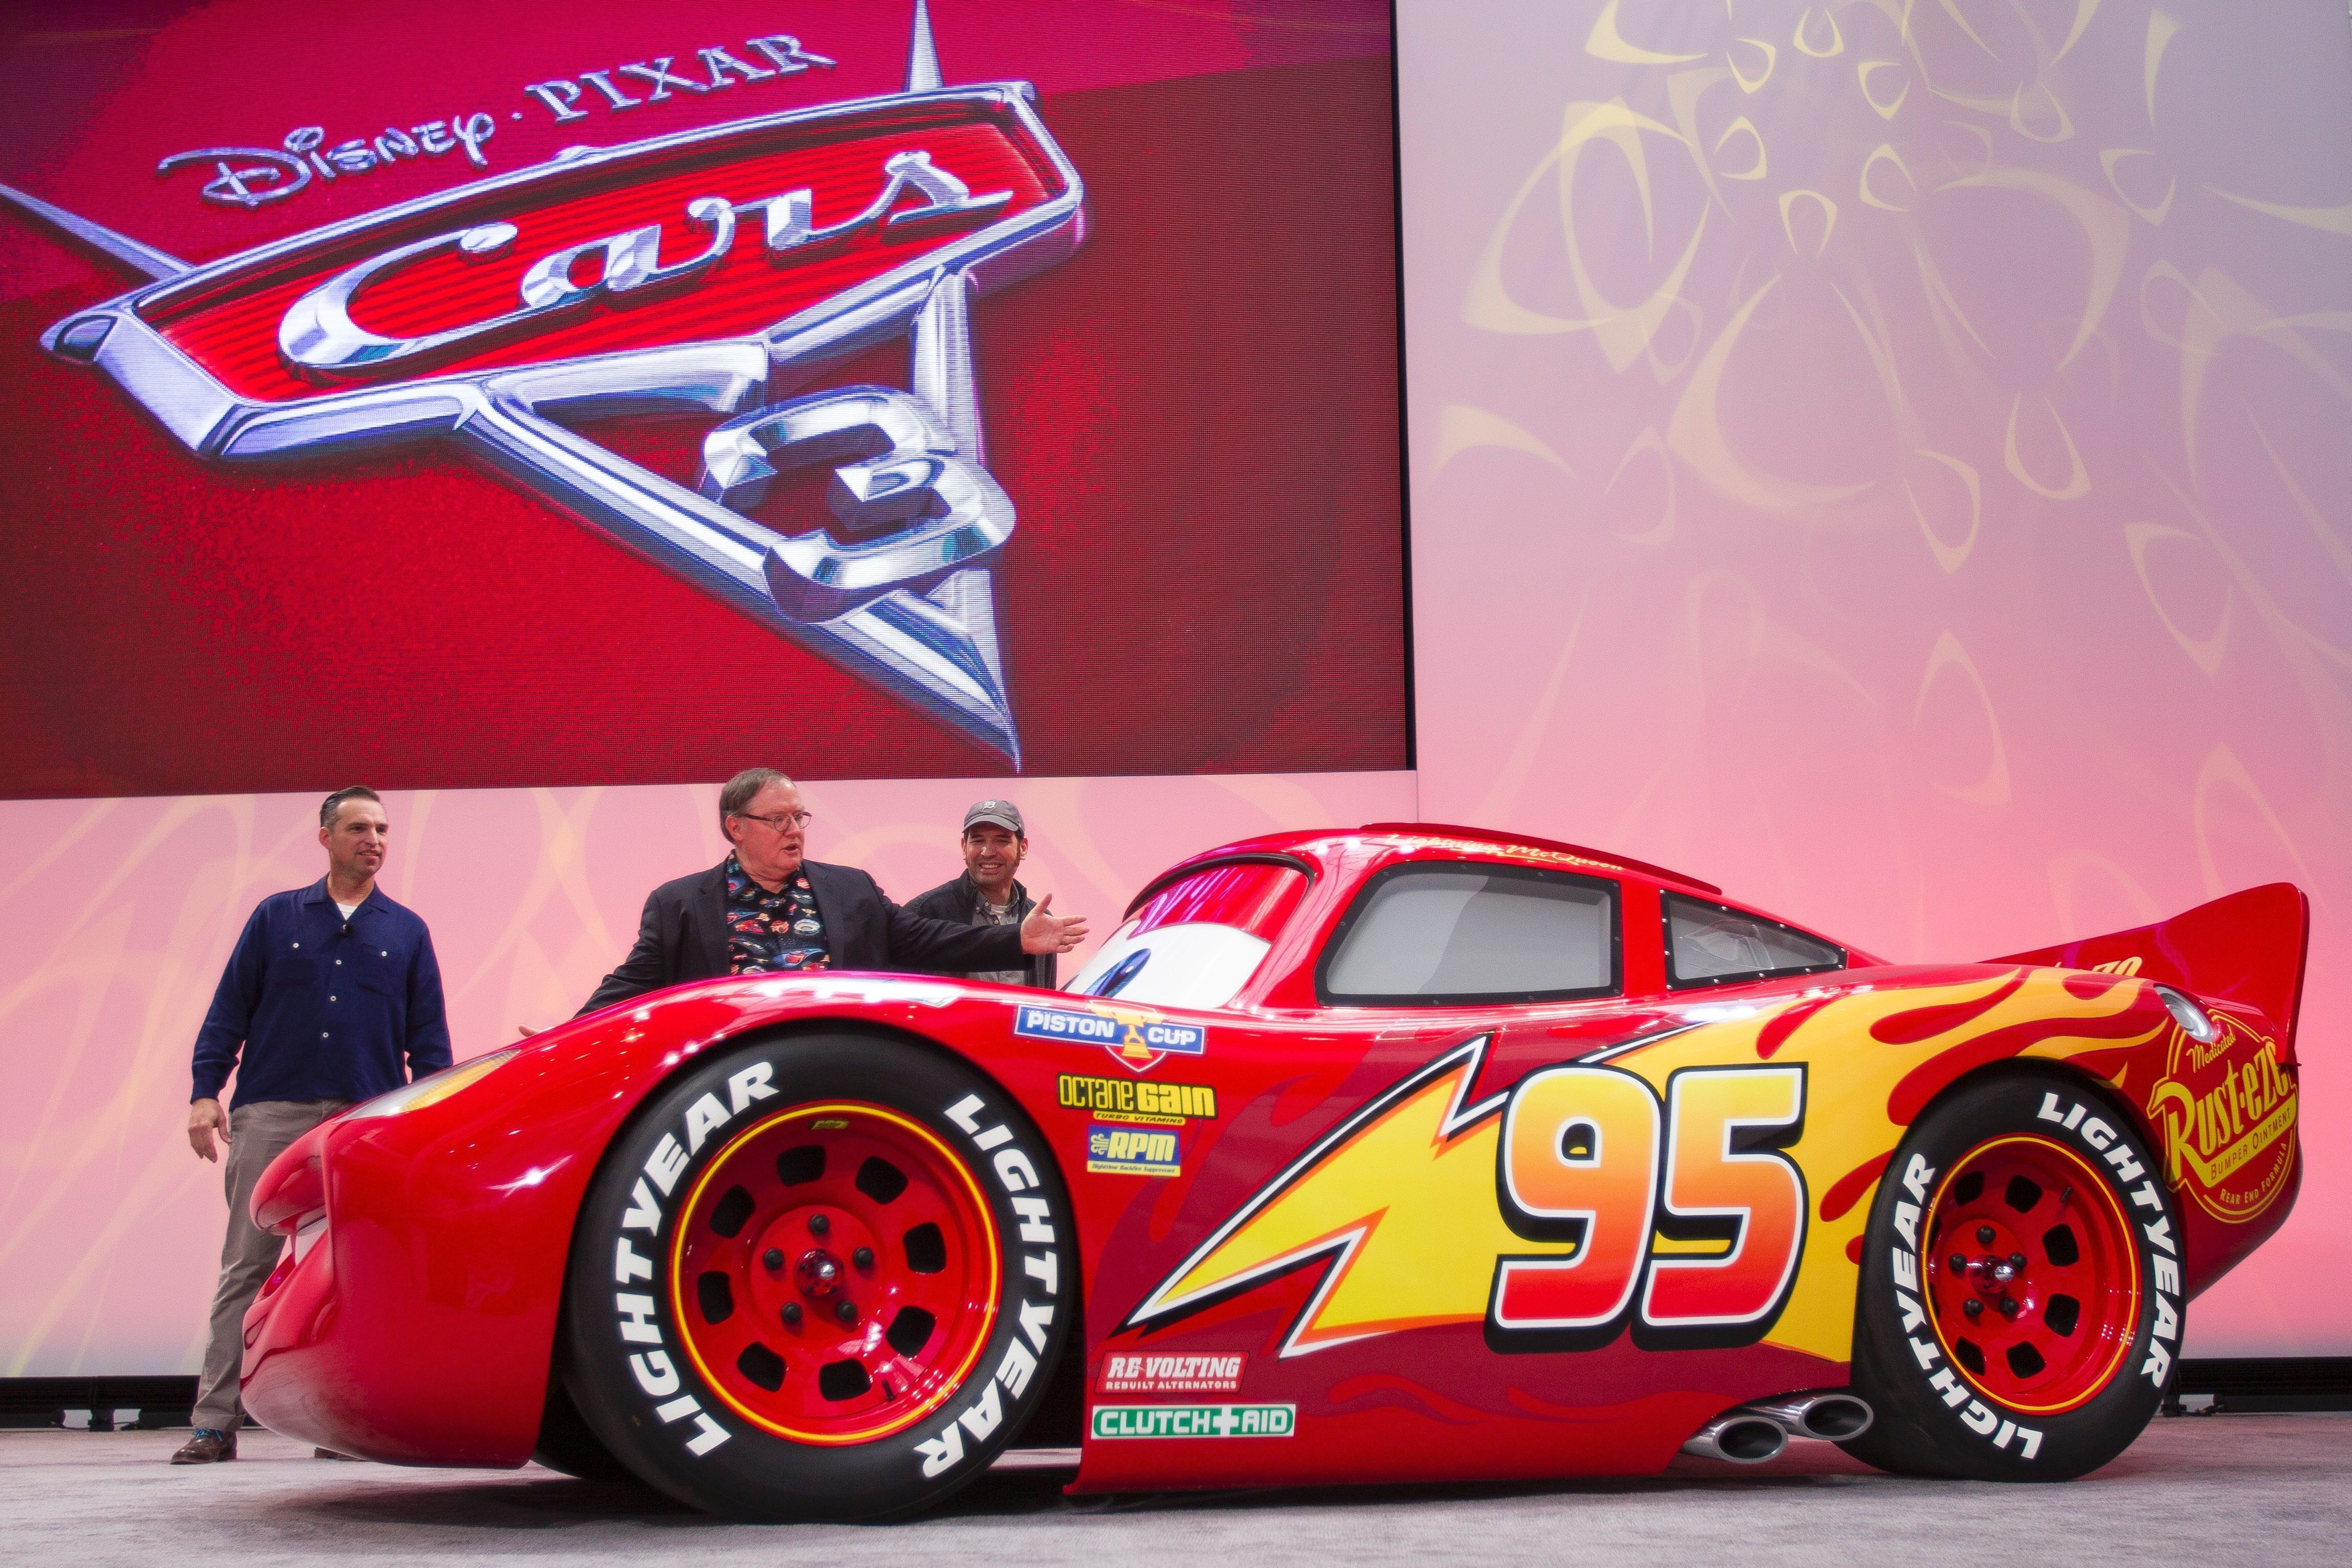 A Life Size Version Of Lightning Mcqueen Drives Onstage To Unveil His New Paint Job